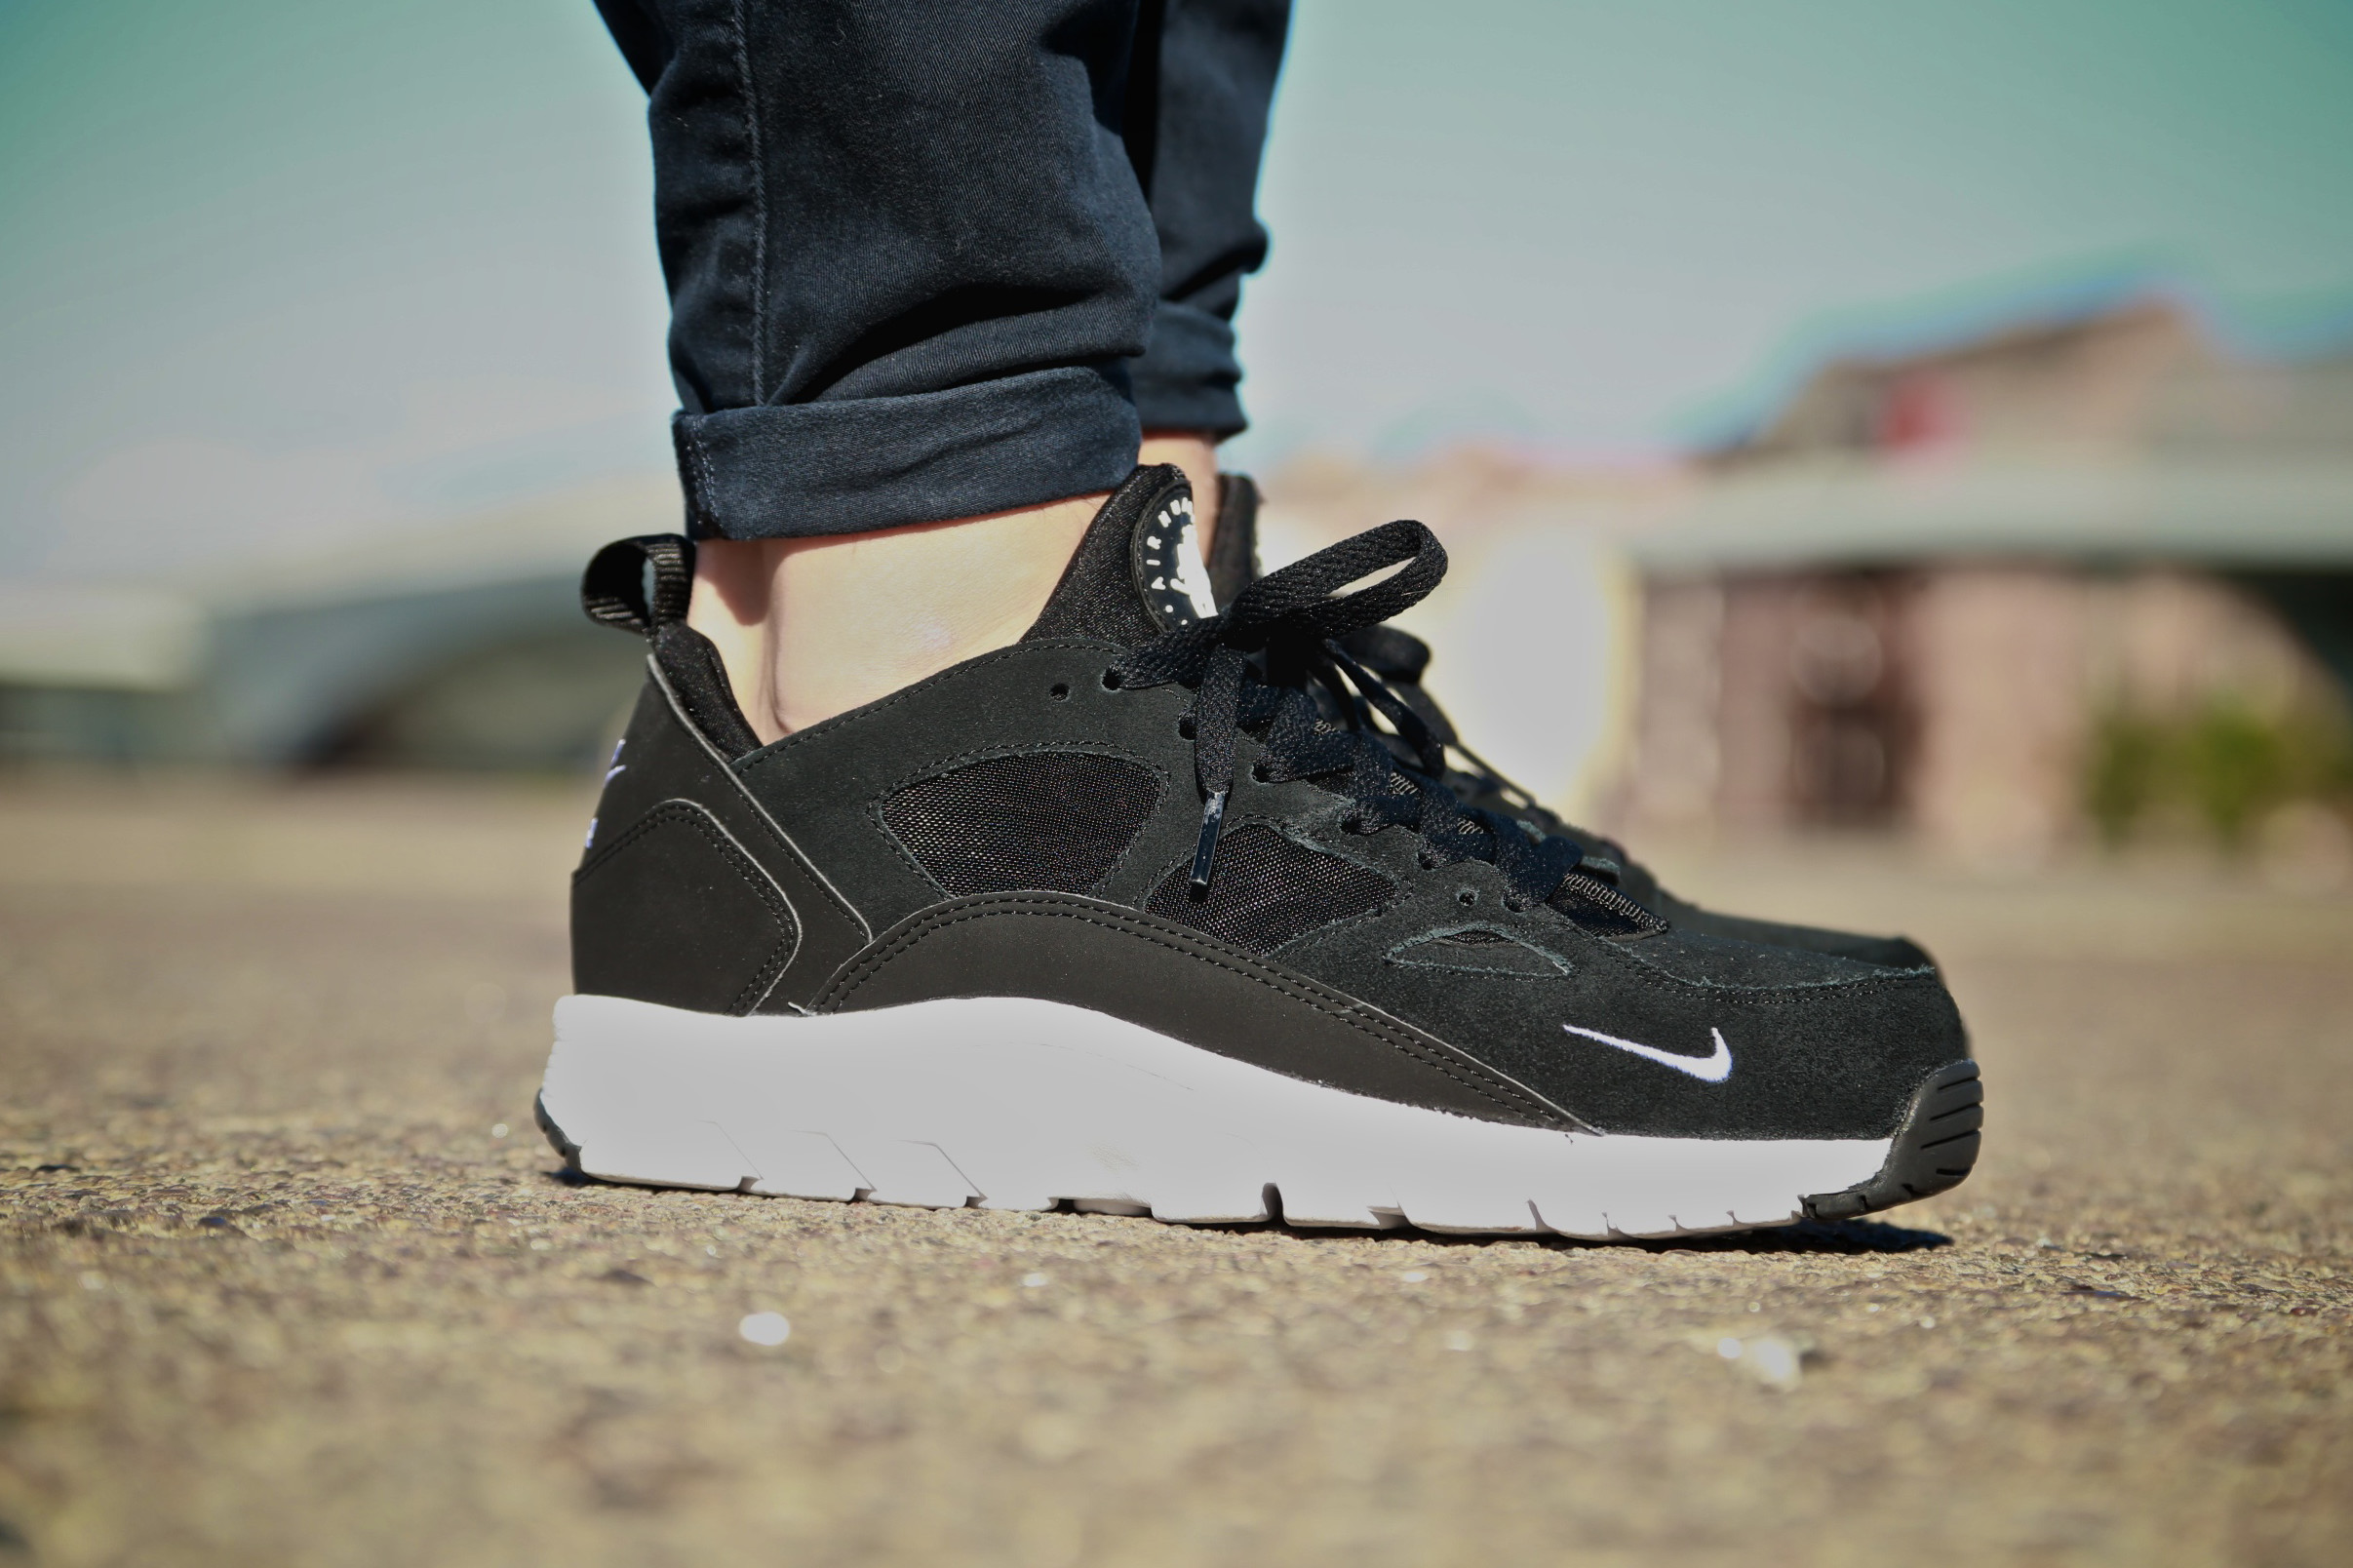 597b6c5d76590 Nike Air Trainer Huarache Low – Black   White – STASP